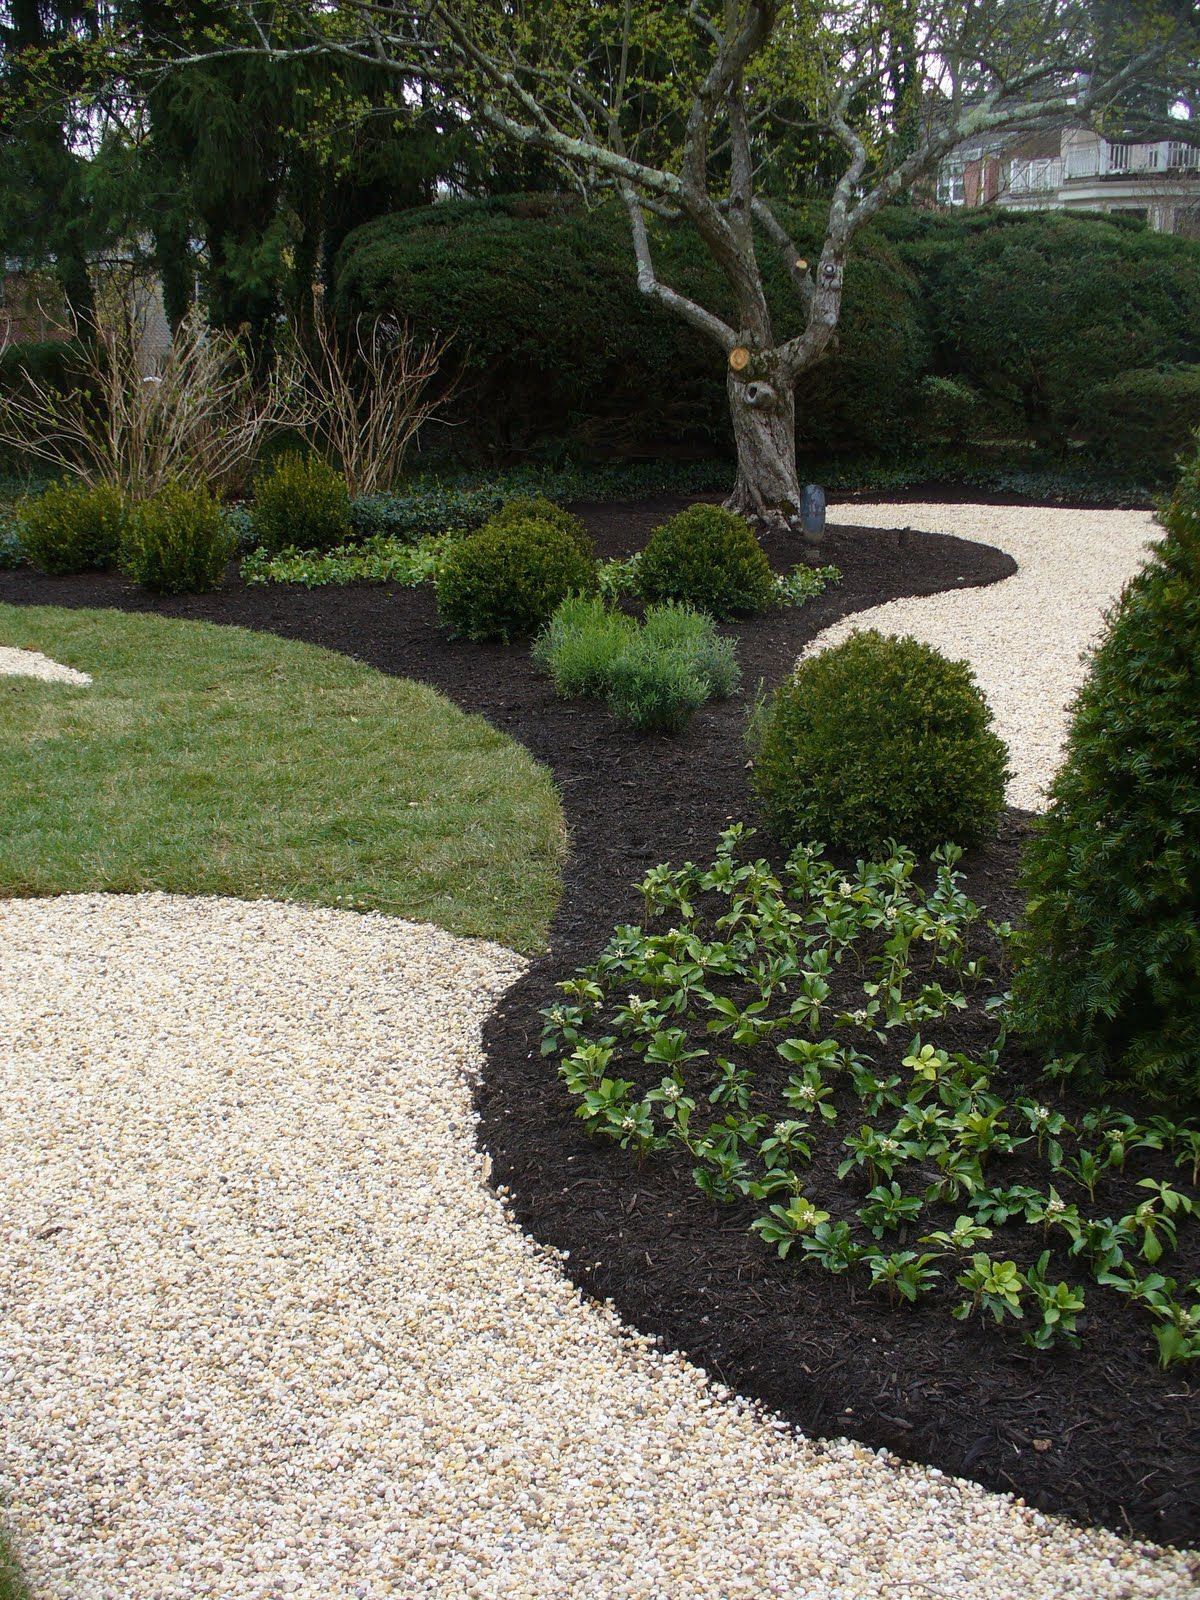 A pairing of black mulch with light colored crushed stone